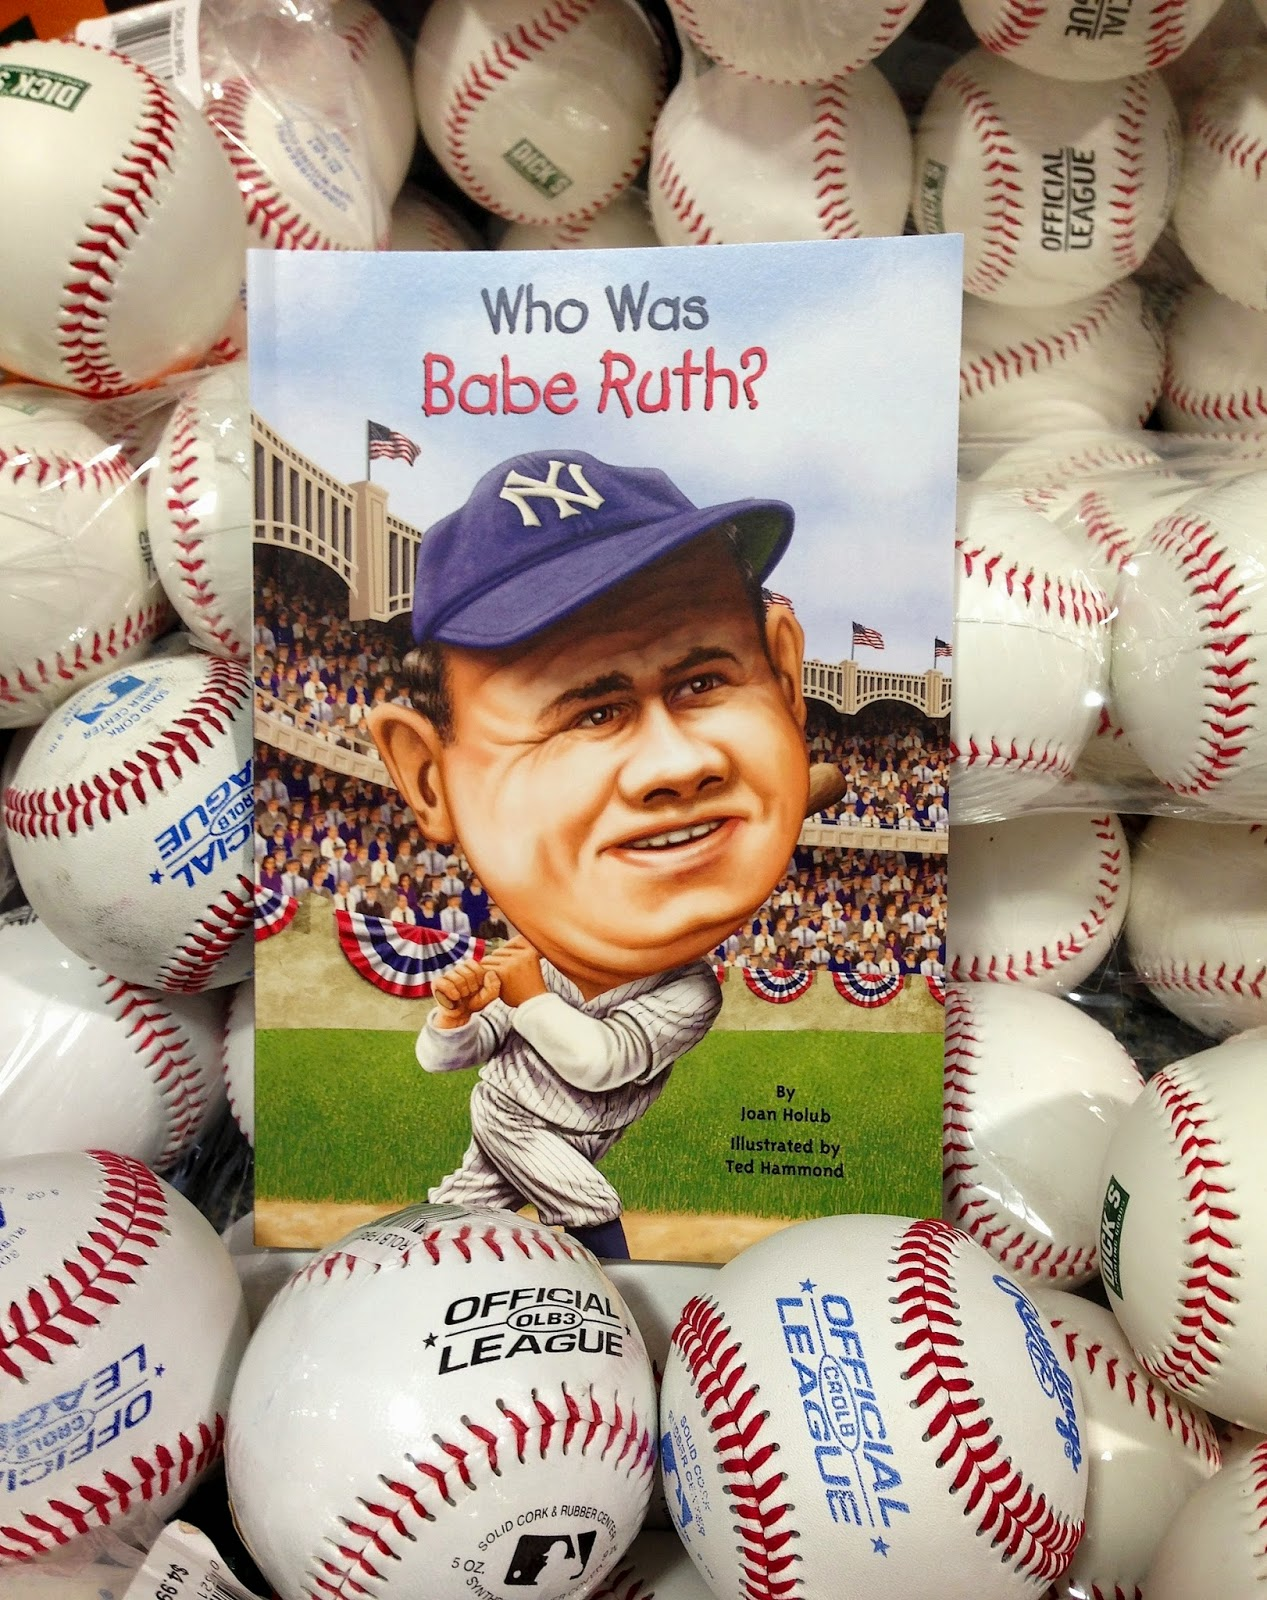 http://www.amazon.com/Who-Babe-Ruth-Joan-Holub/dp/0448455862/ref=sr_1_1?s=books&ie=UTF8&qid=1310084578&sr=1-1